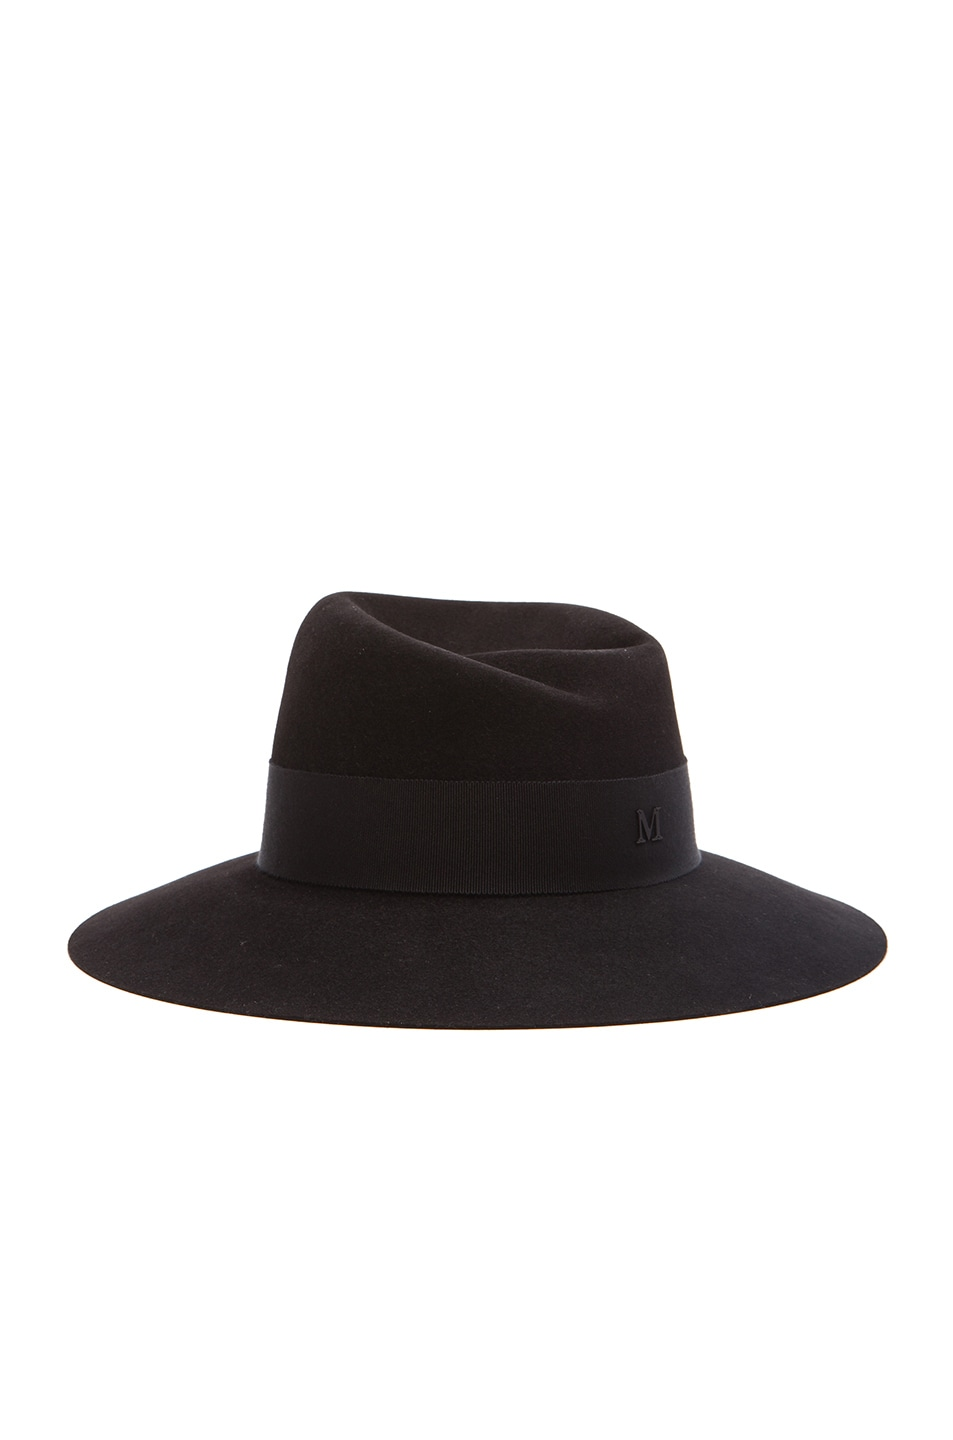 Image 1 of Maison Michel Virginie Large Brim Hat in Black